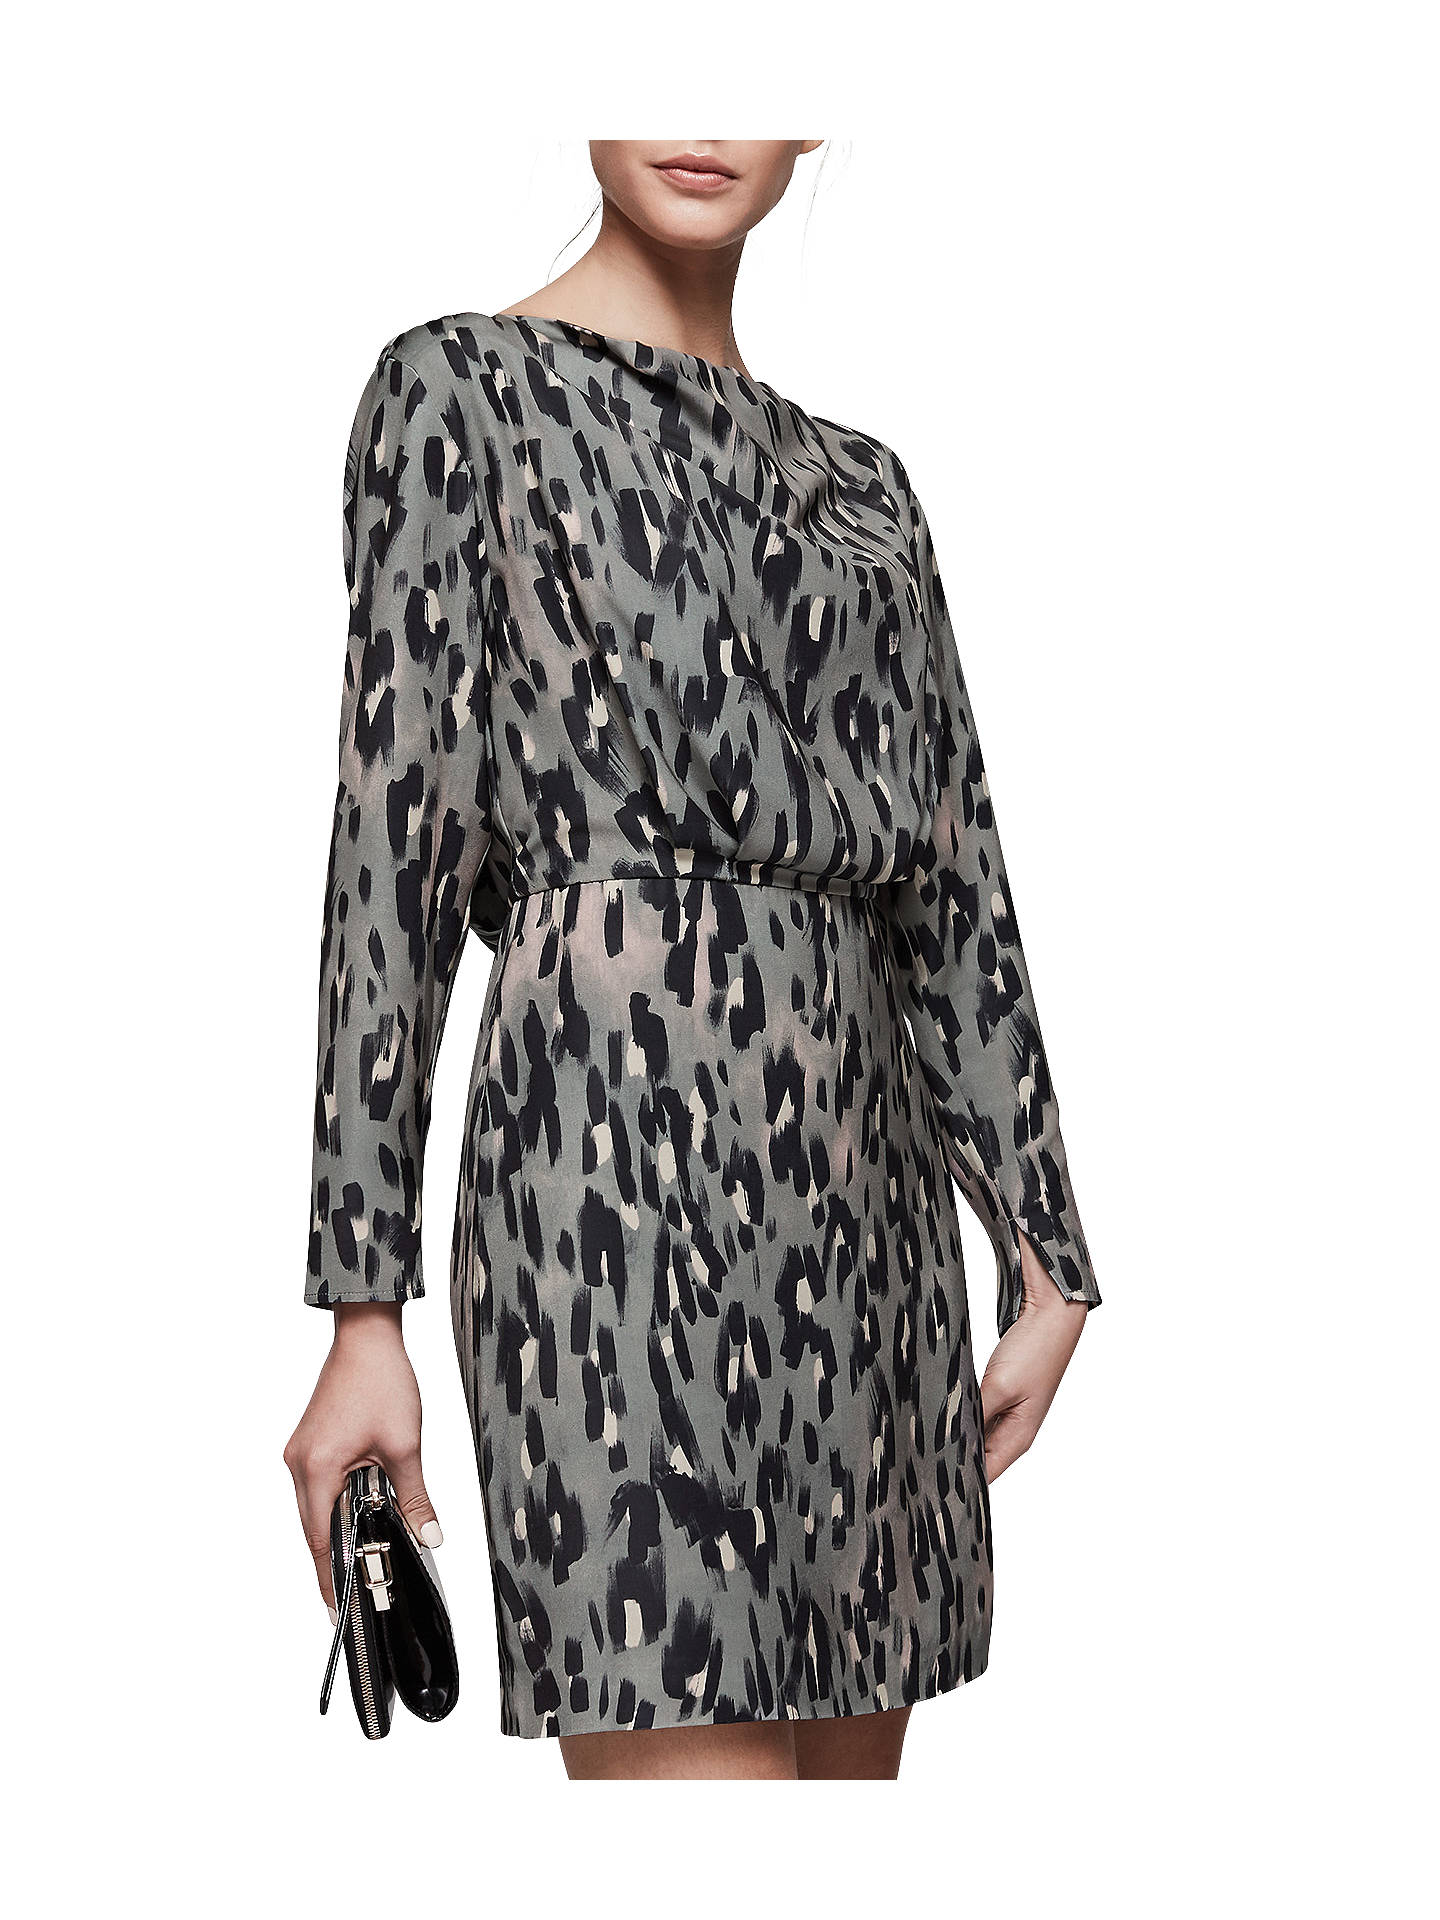 6198b52172b0 Buy Reiss Lotta Print Long Sleeve Dress, Multi, 6 Online at johnlewis.com  ...